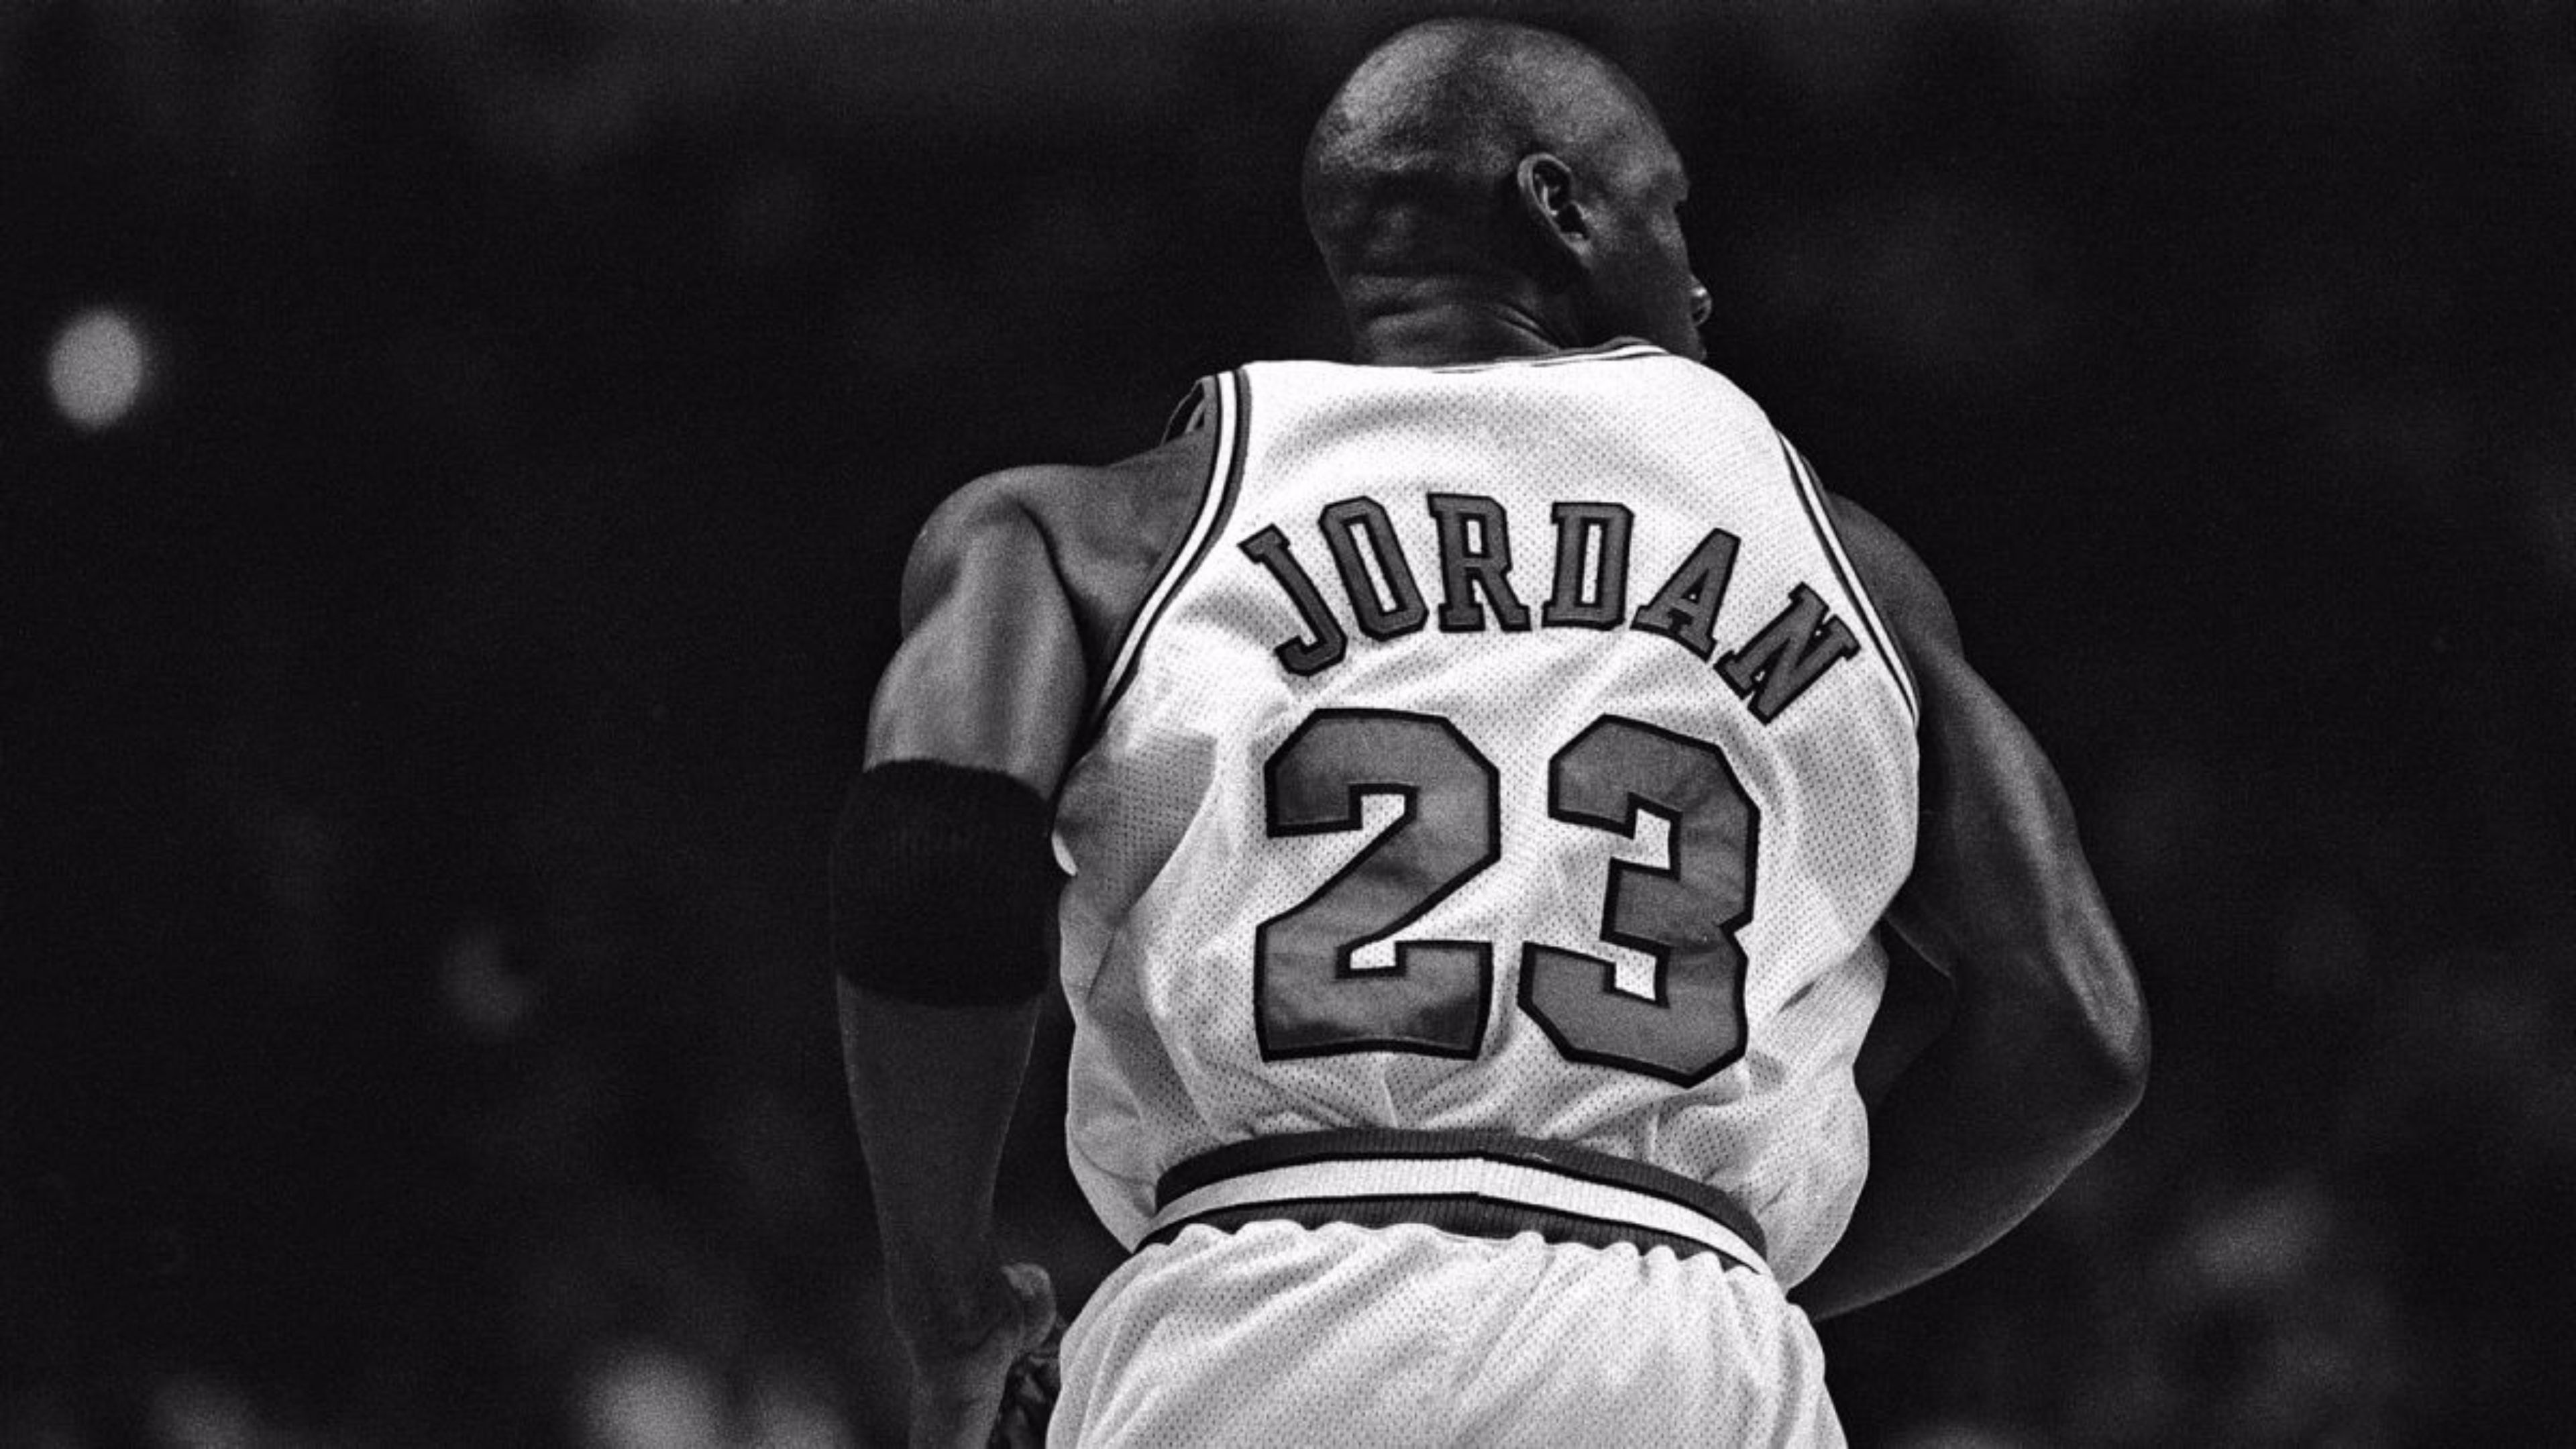 HD Air Jordan Logo Wallpapers For Free Download Jordan